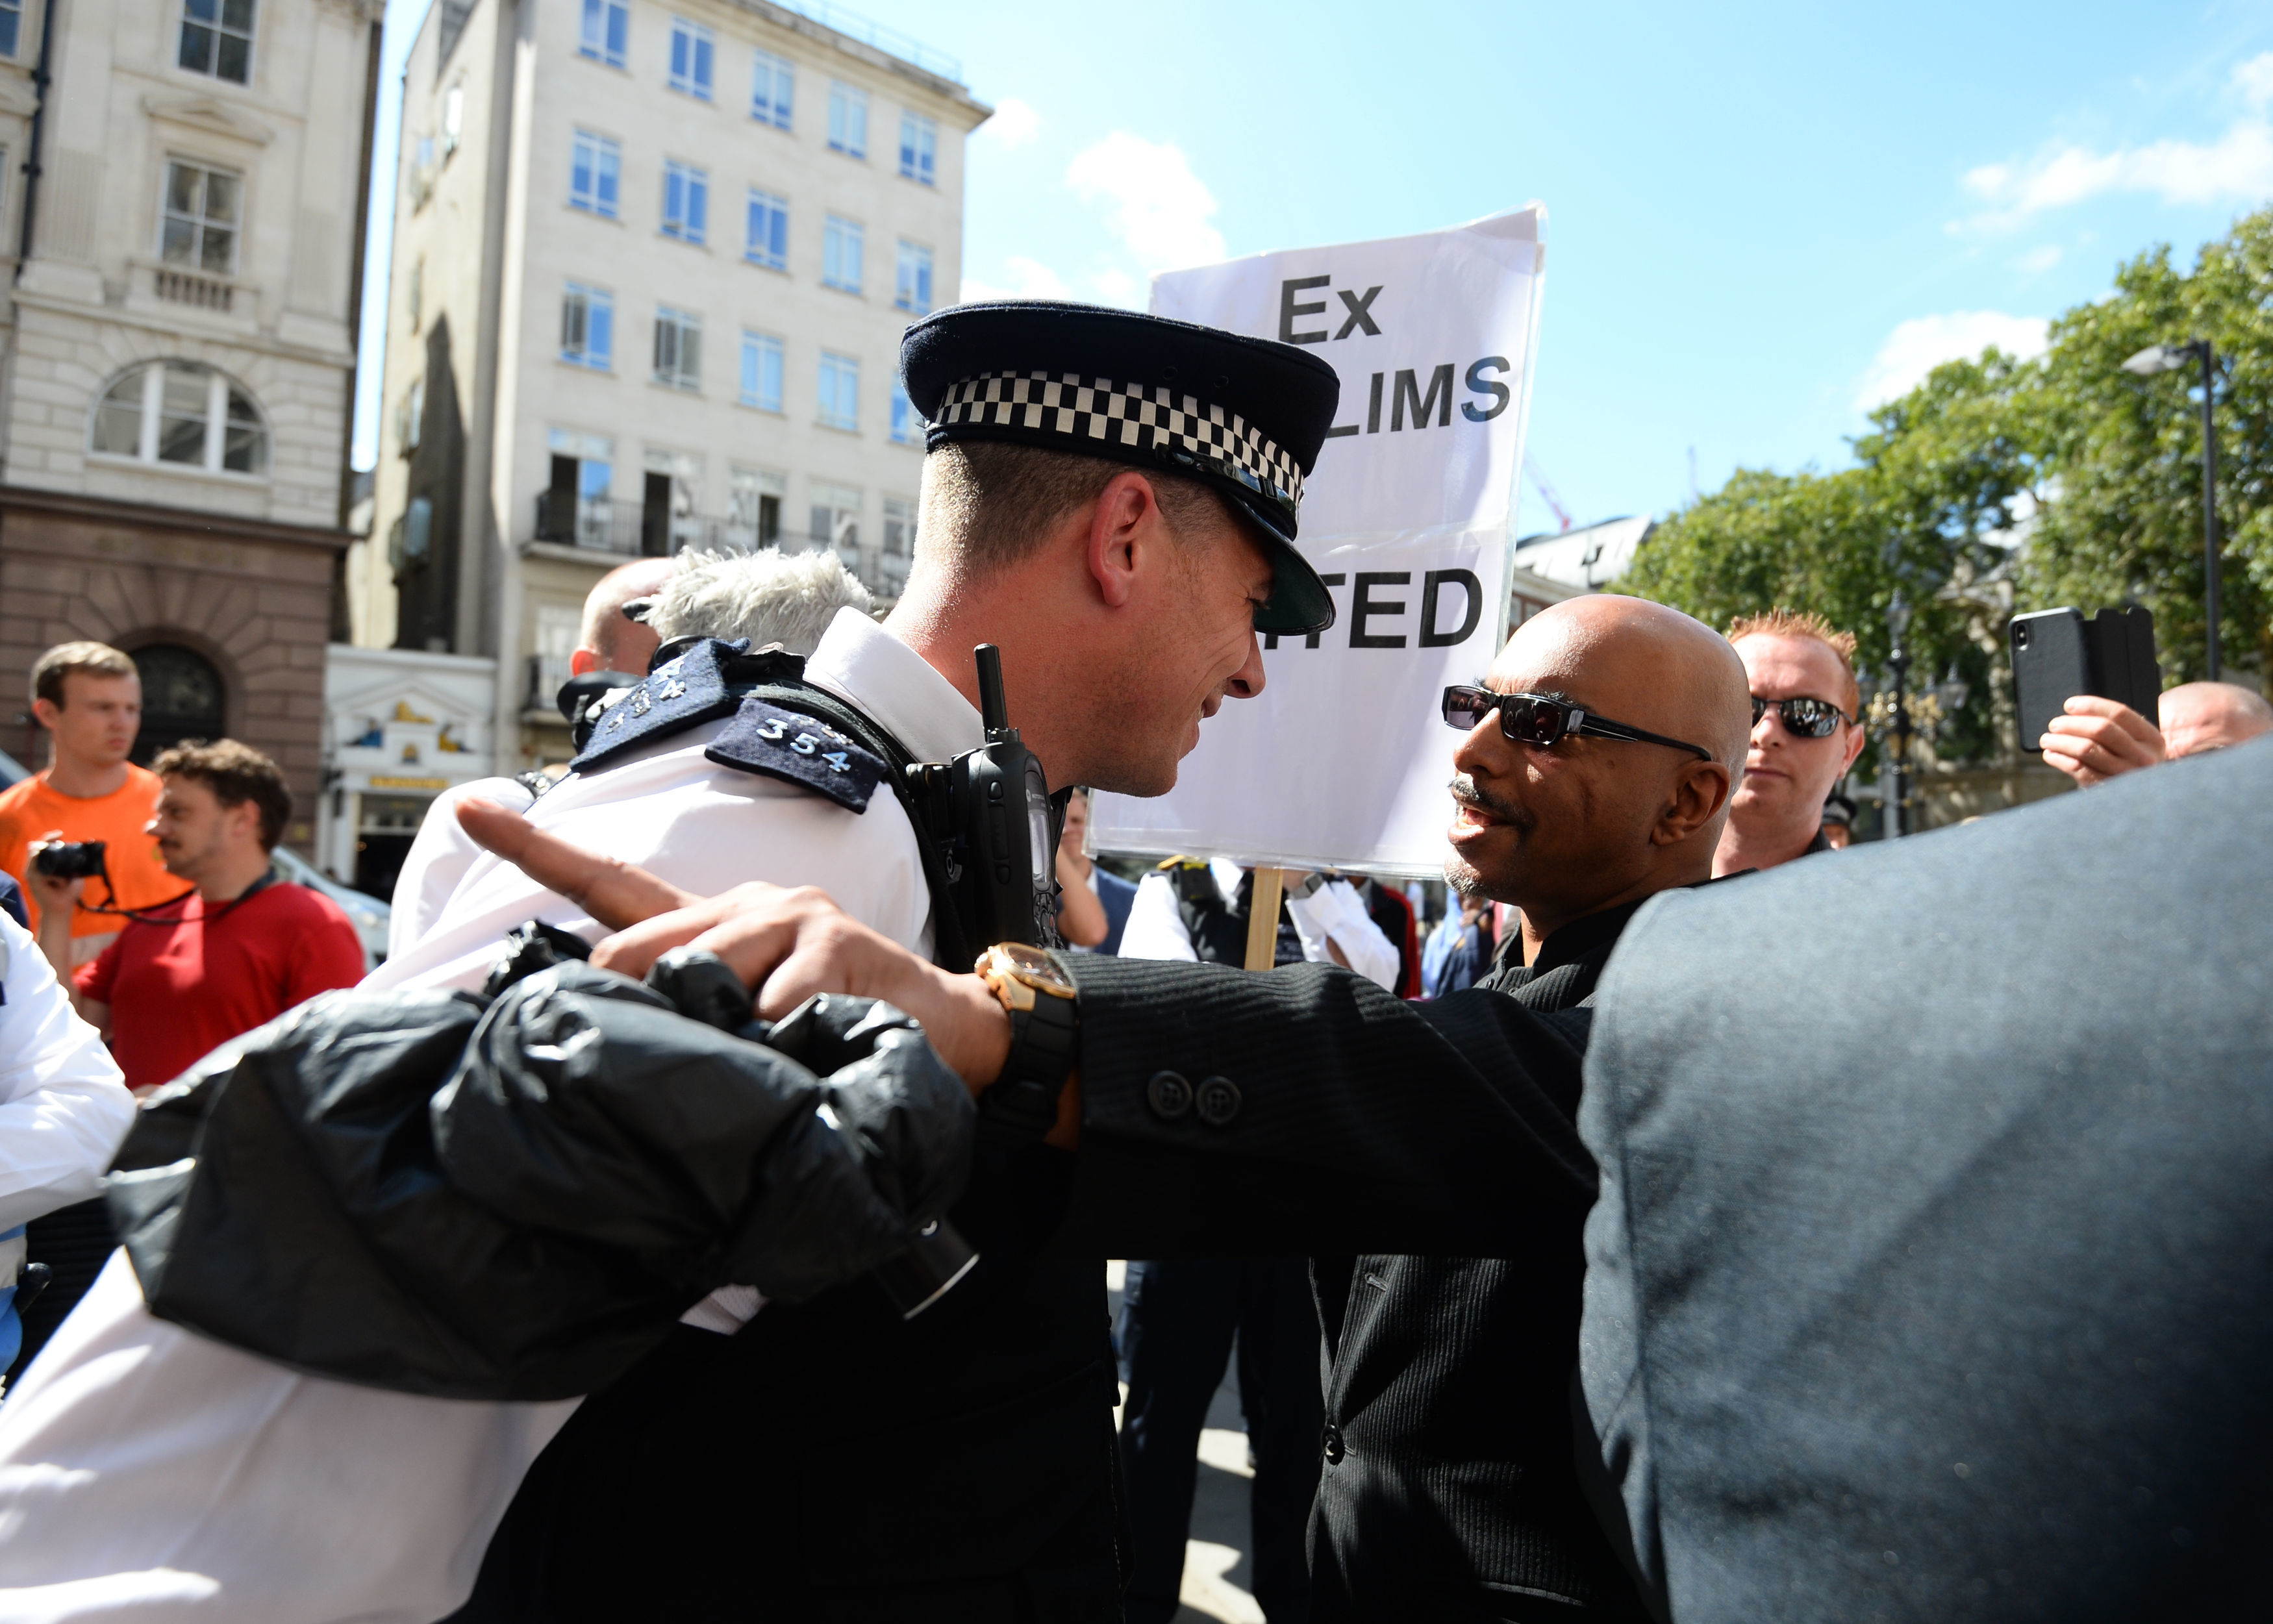 Police get between demonstrators outside the Royal Courts of Justice  Tommy Robinson walks free after court challenge but could still face jail 2